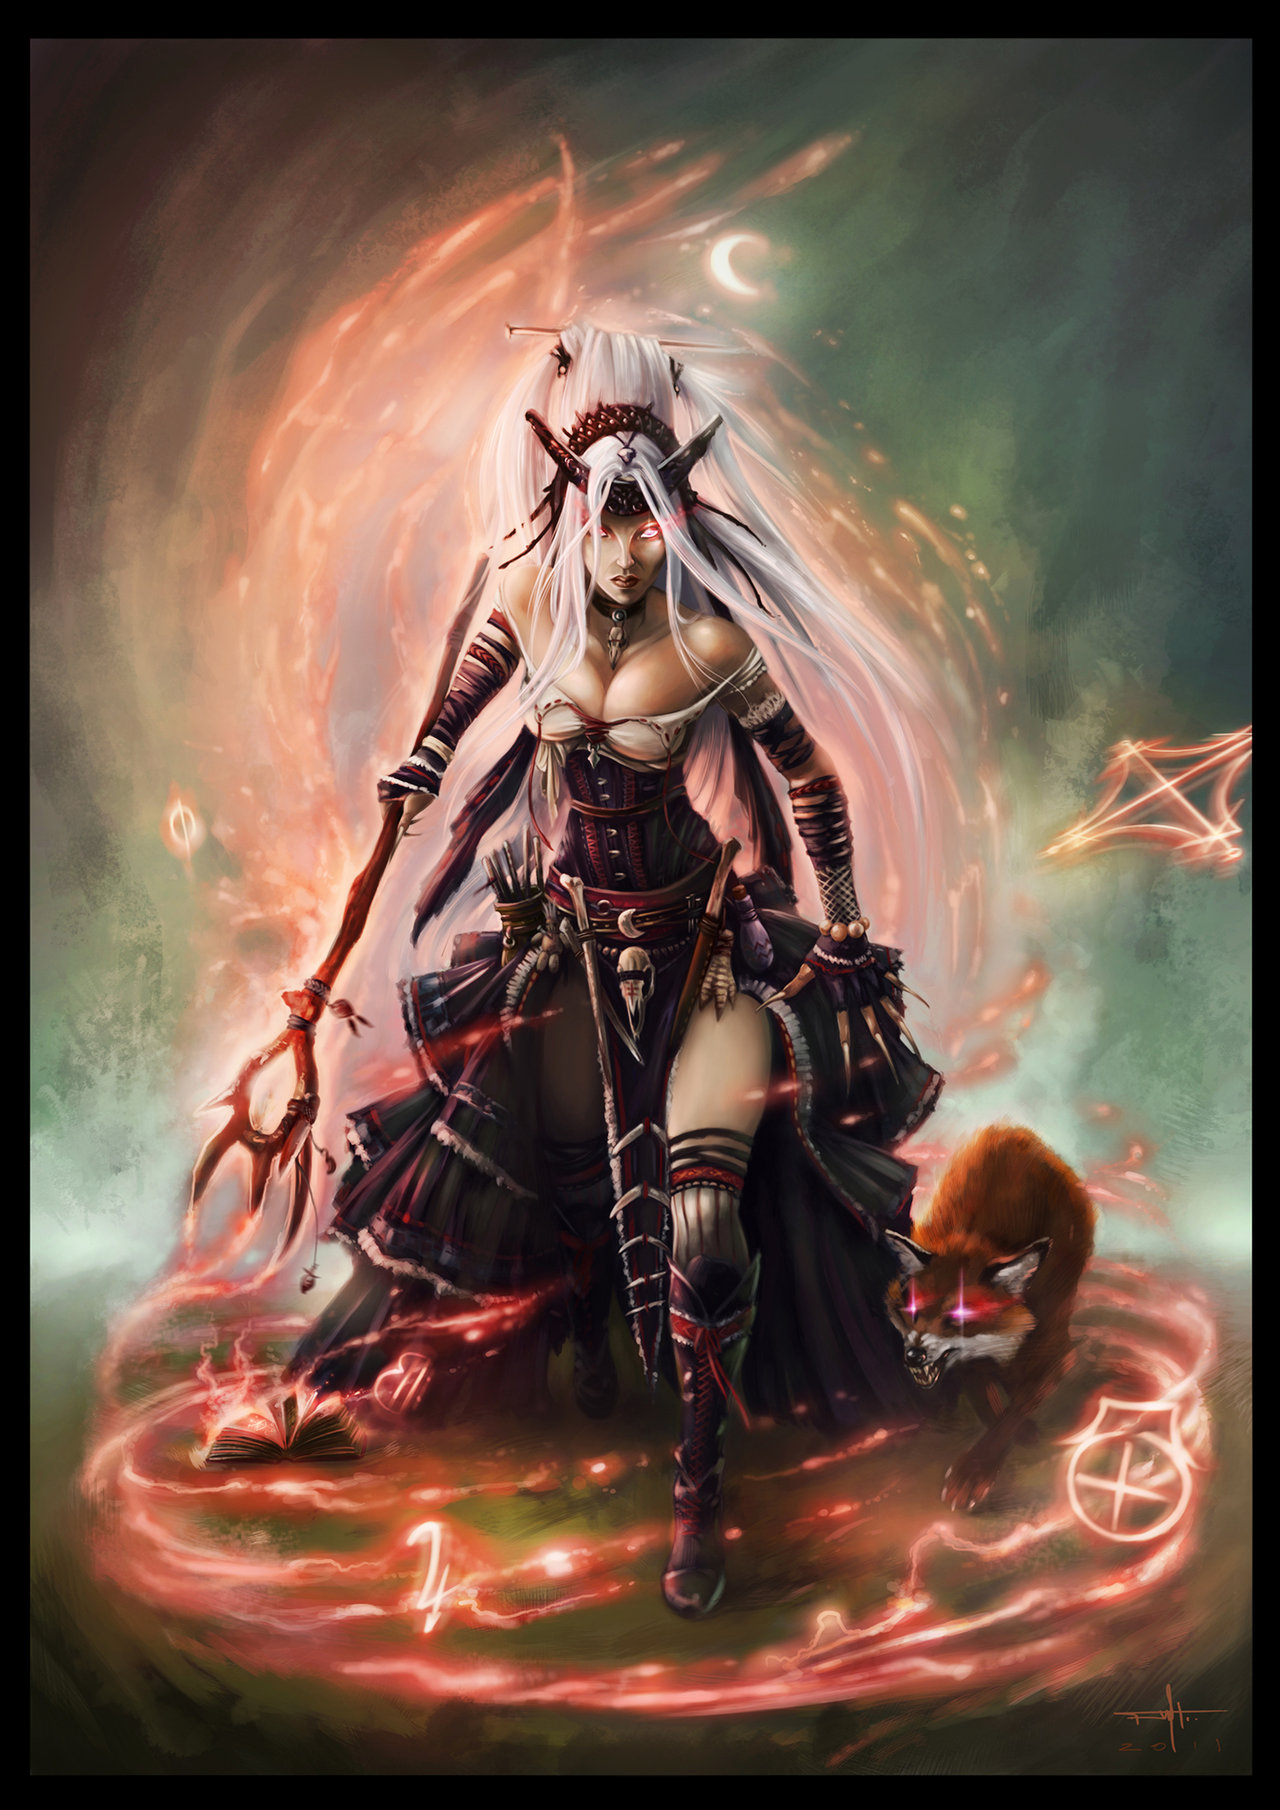 pathfinder_fan_art__the_witch_by_cromaticresponses-d4o9rf1.jpg